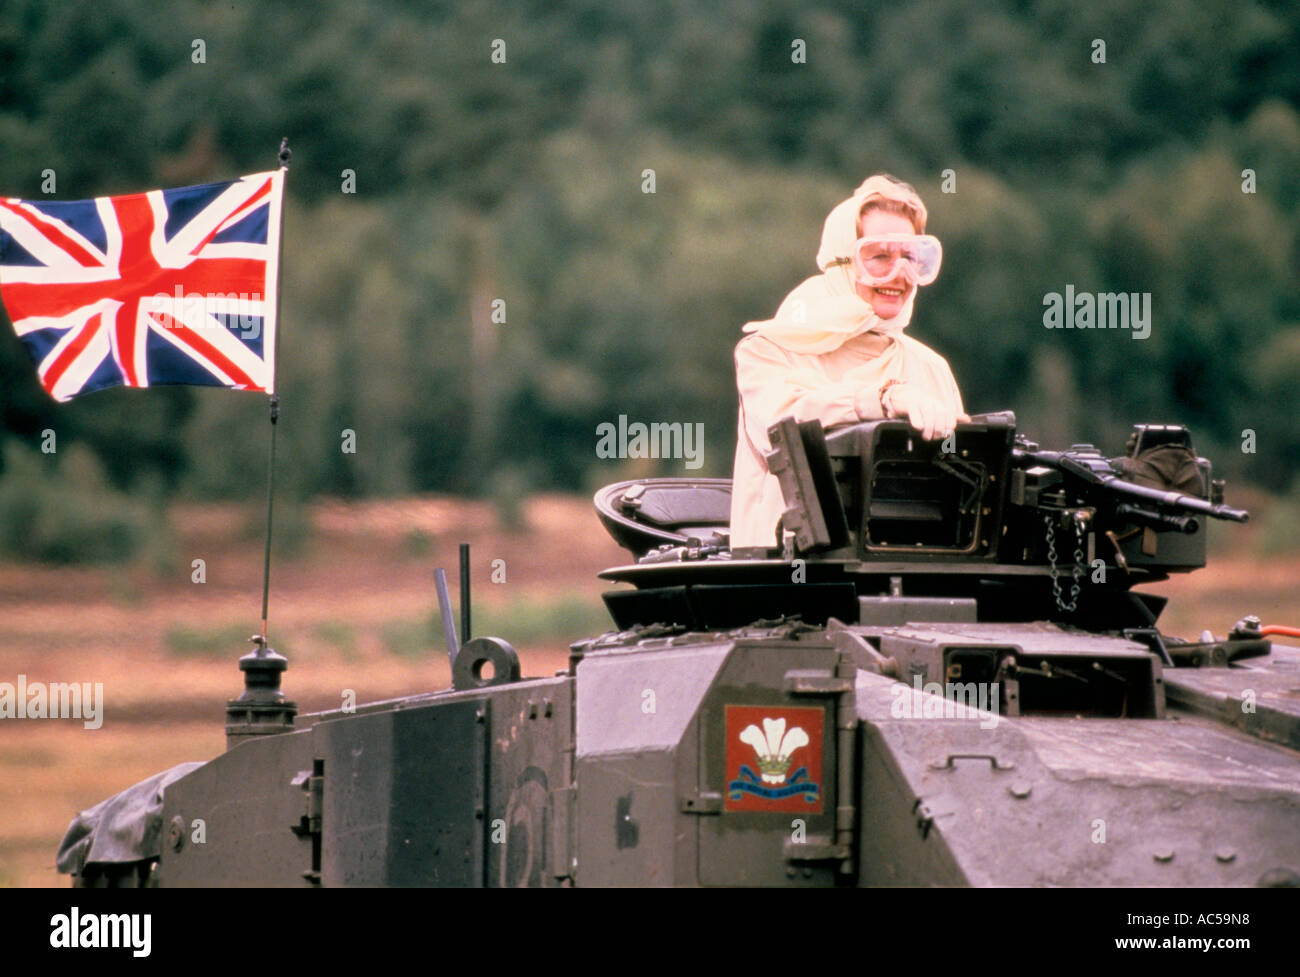 MARGARET THATCHER DRIVING A BRITISH TANK IN GERMANY 17 09 86 - Stock Image